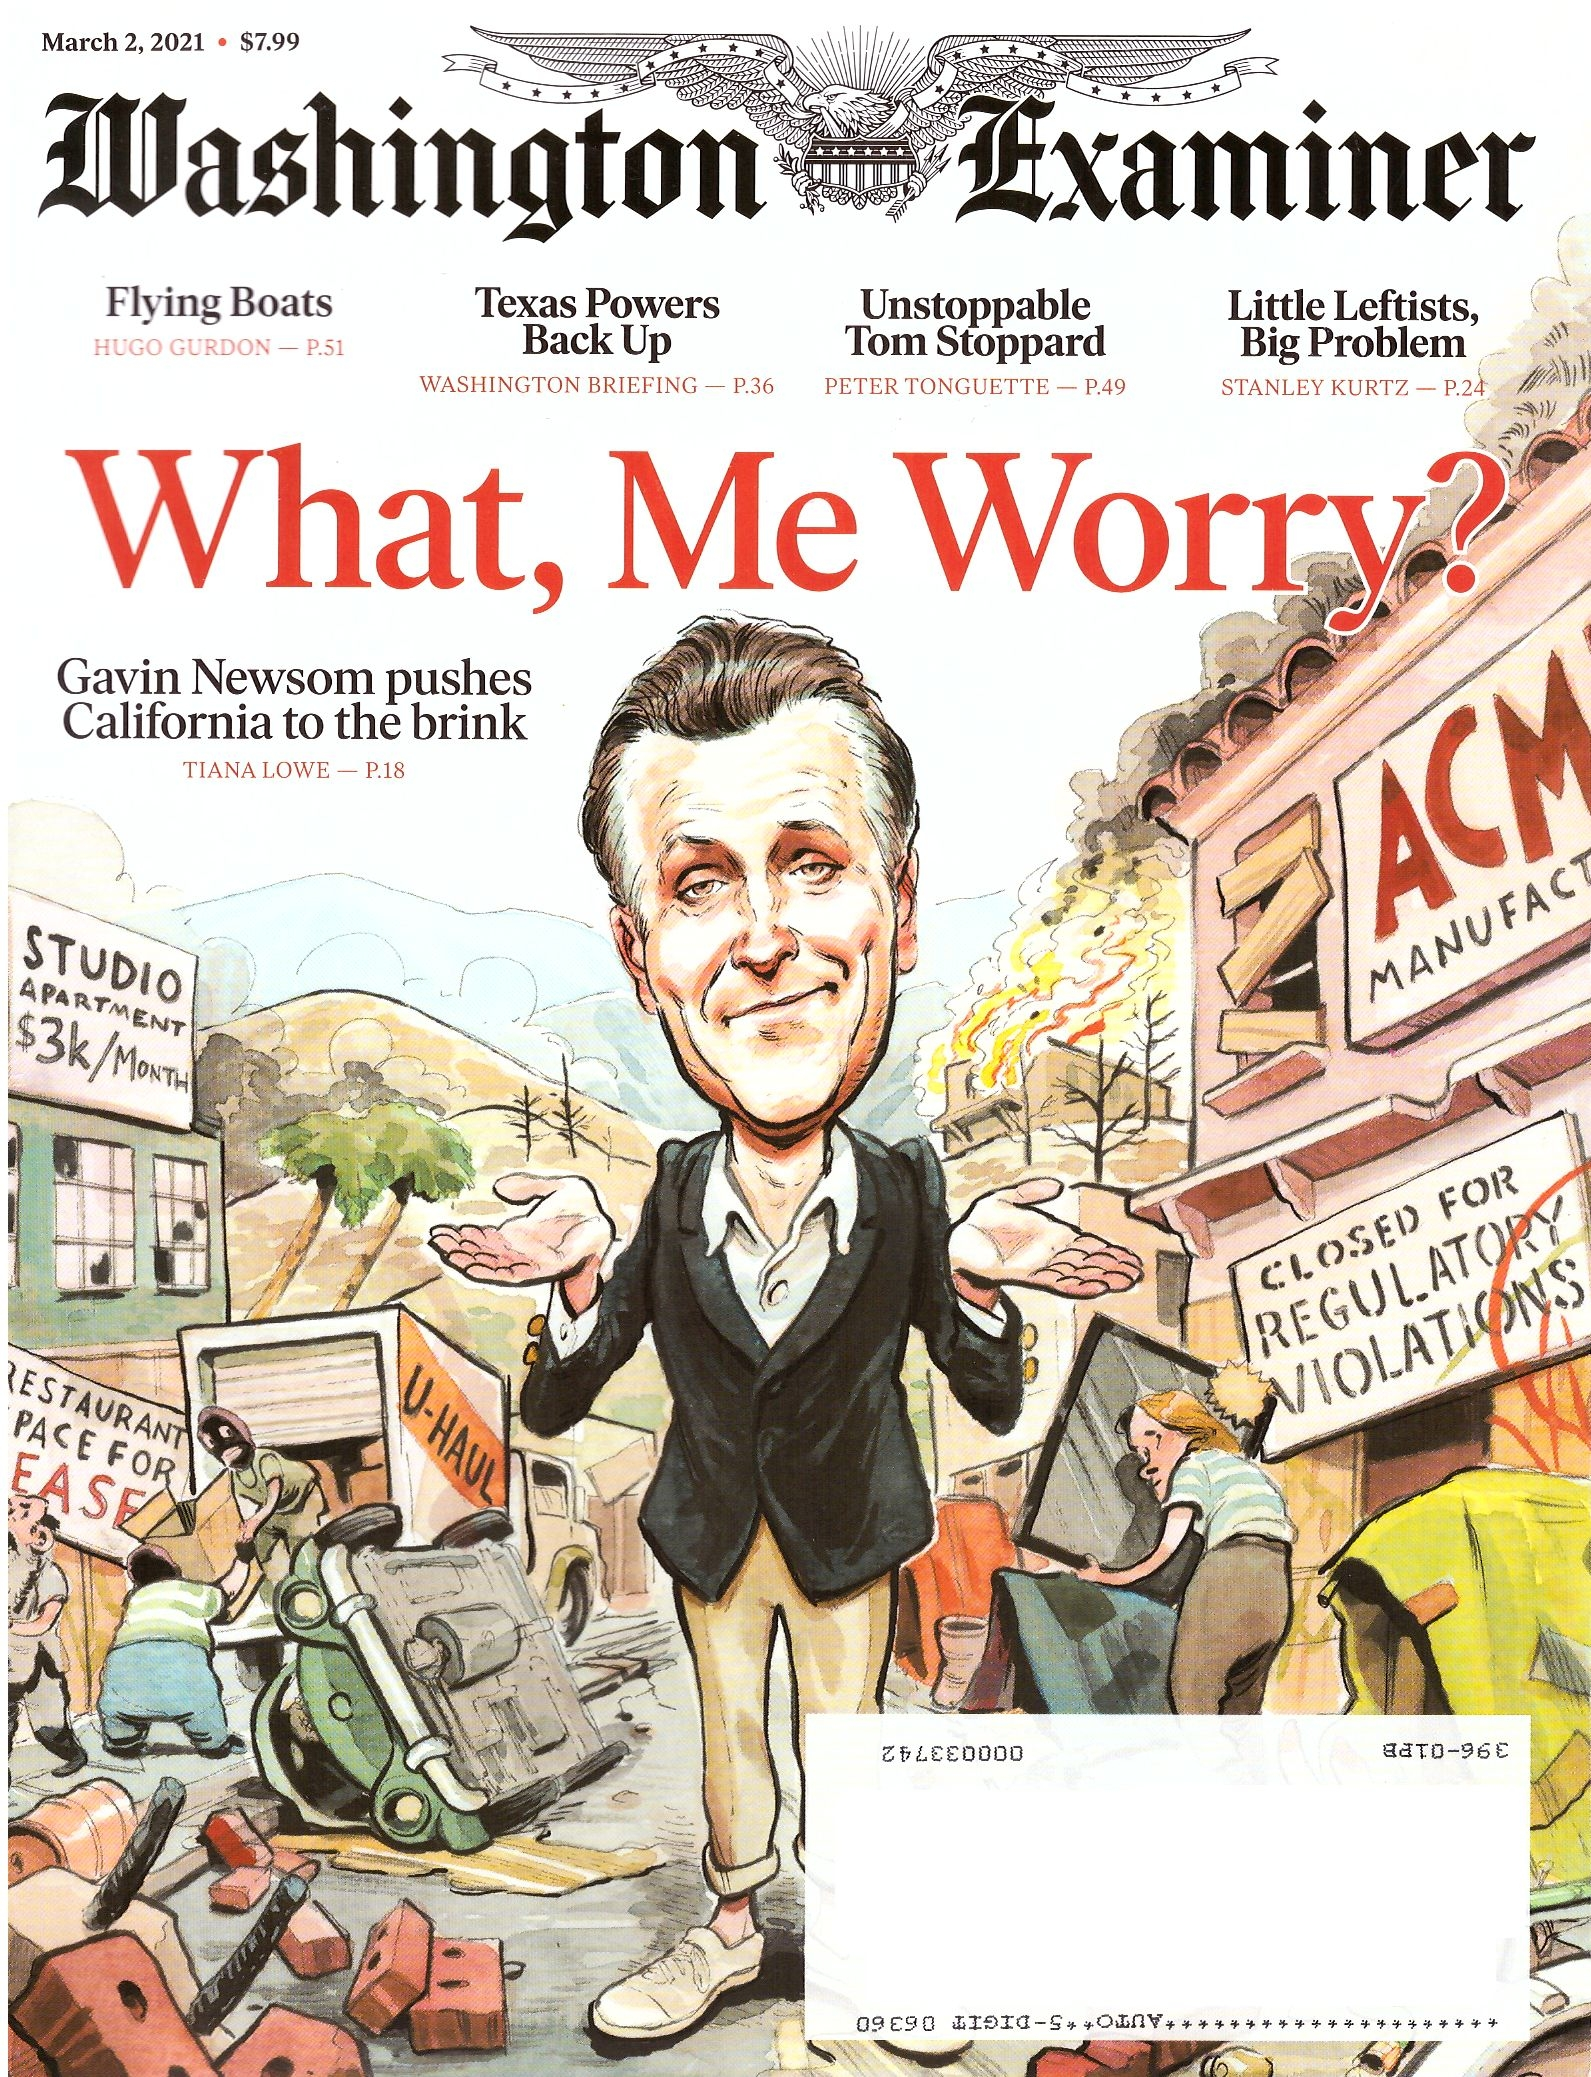 Washington Examiner with What, Me Worry? Cover • USA